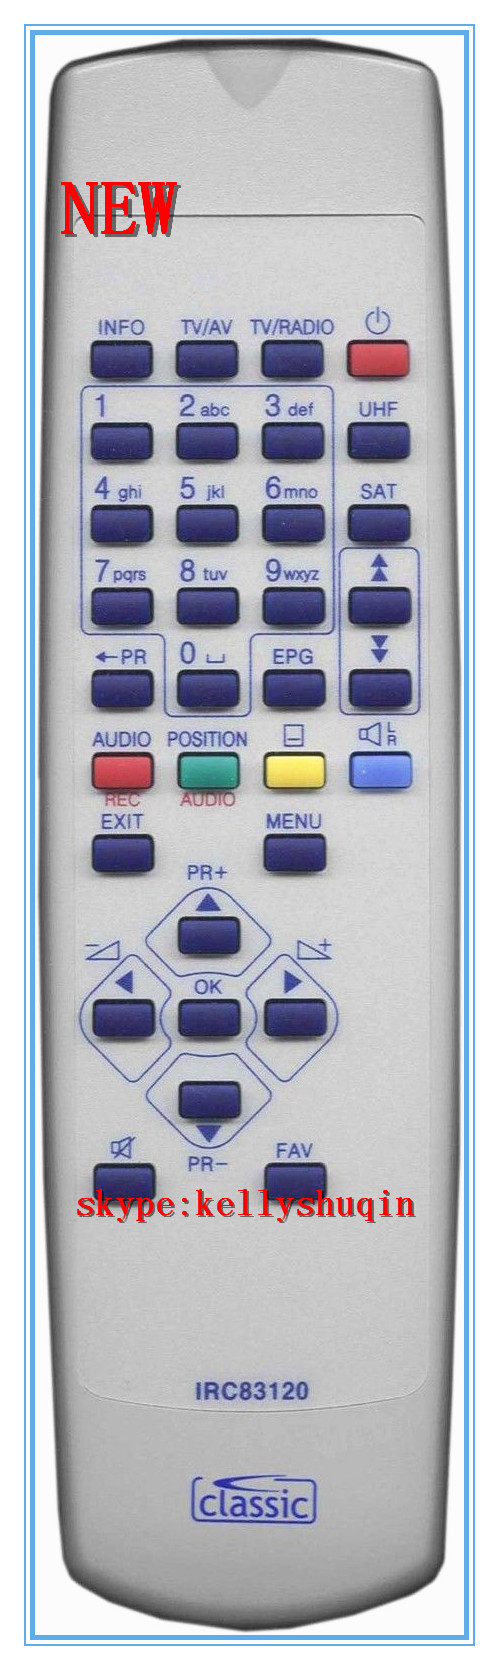 SOLVED: I have a yy-88A sat universal remote control i - Fixya